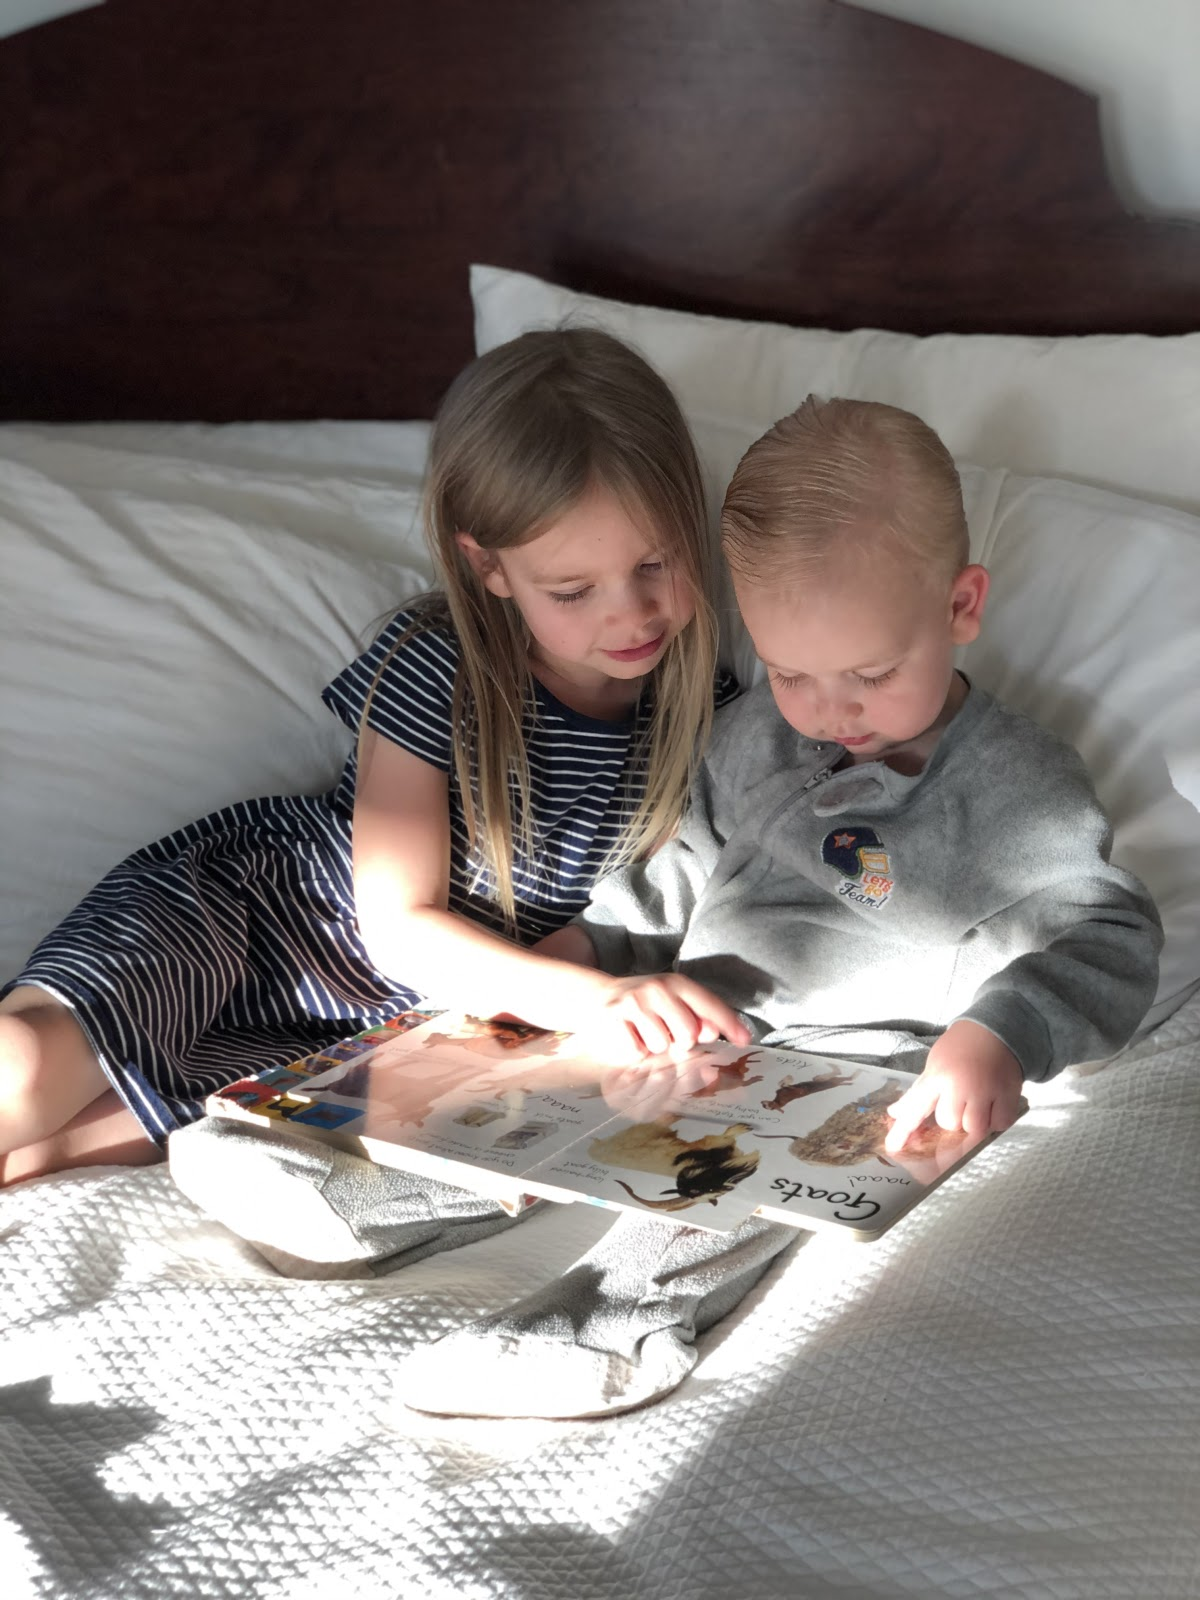 two young children looking through a book